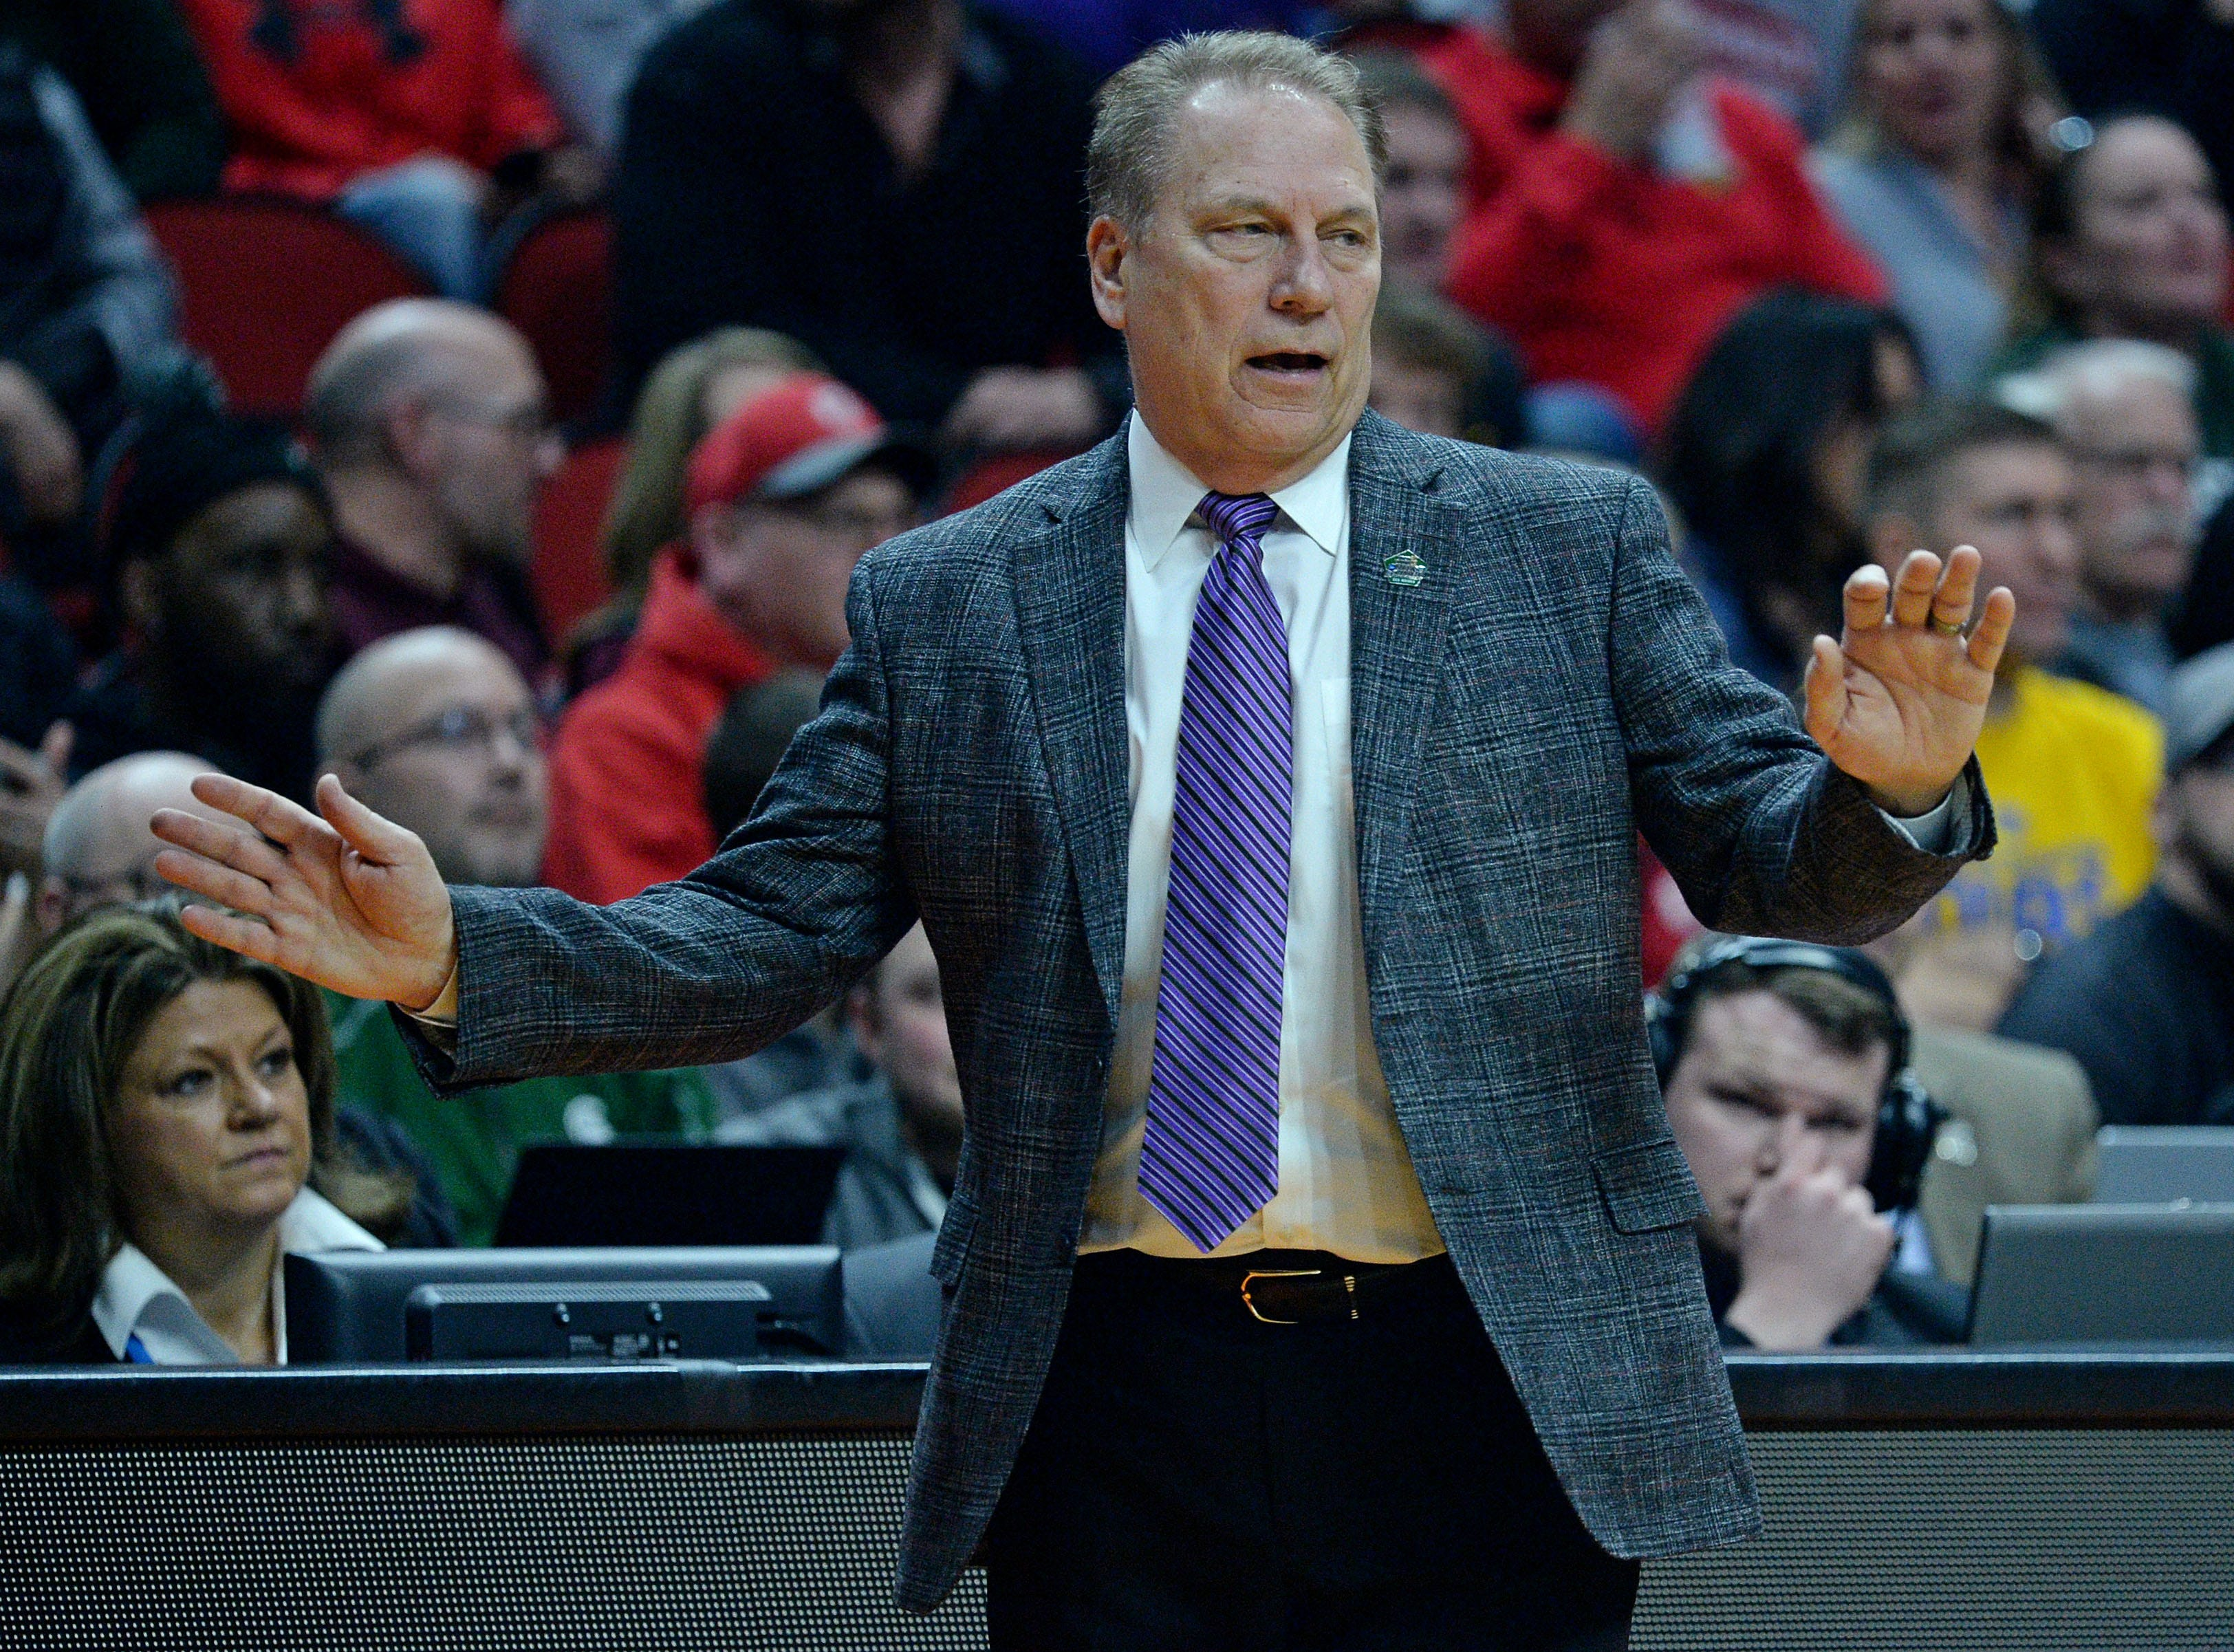 Mar 21, 2019; Des Moines, IA, United States; Michigan State Spartans head coach Tom Izzo reacts during the first half against the Bradley Braves in the first round of the 2019 NCAA Tournament at Wells Fargo Arena. Mandatory Credit: Steven Branscombe-USA TODAY Sports